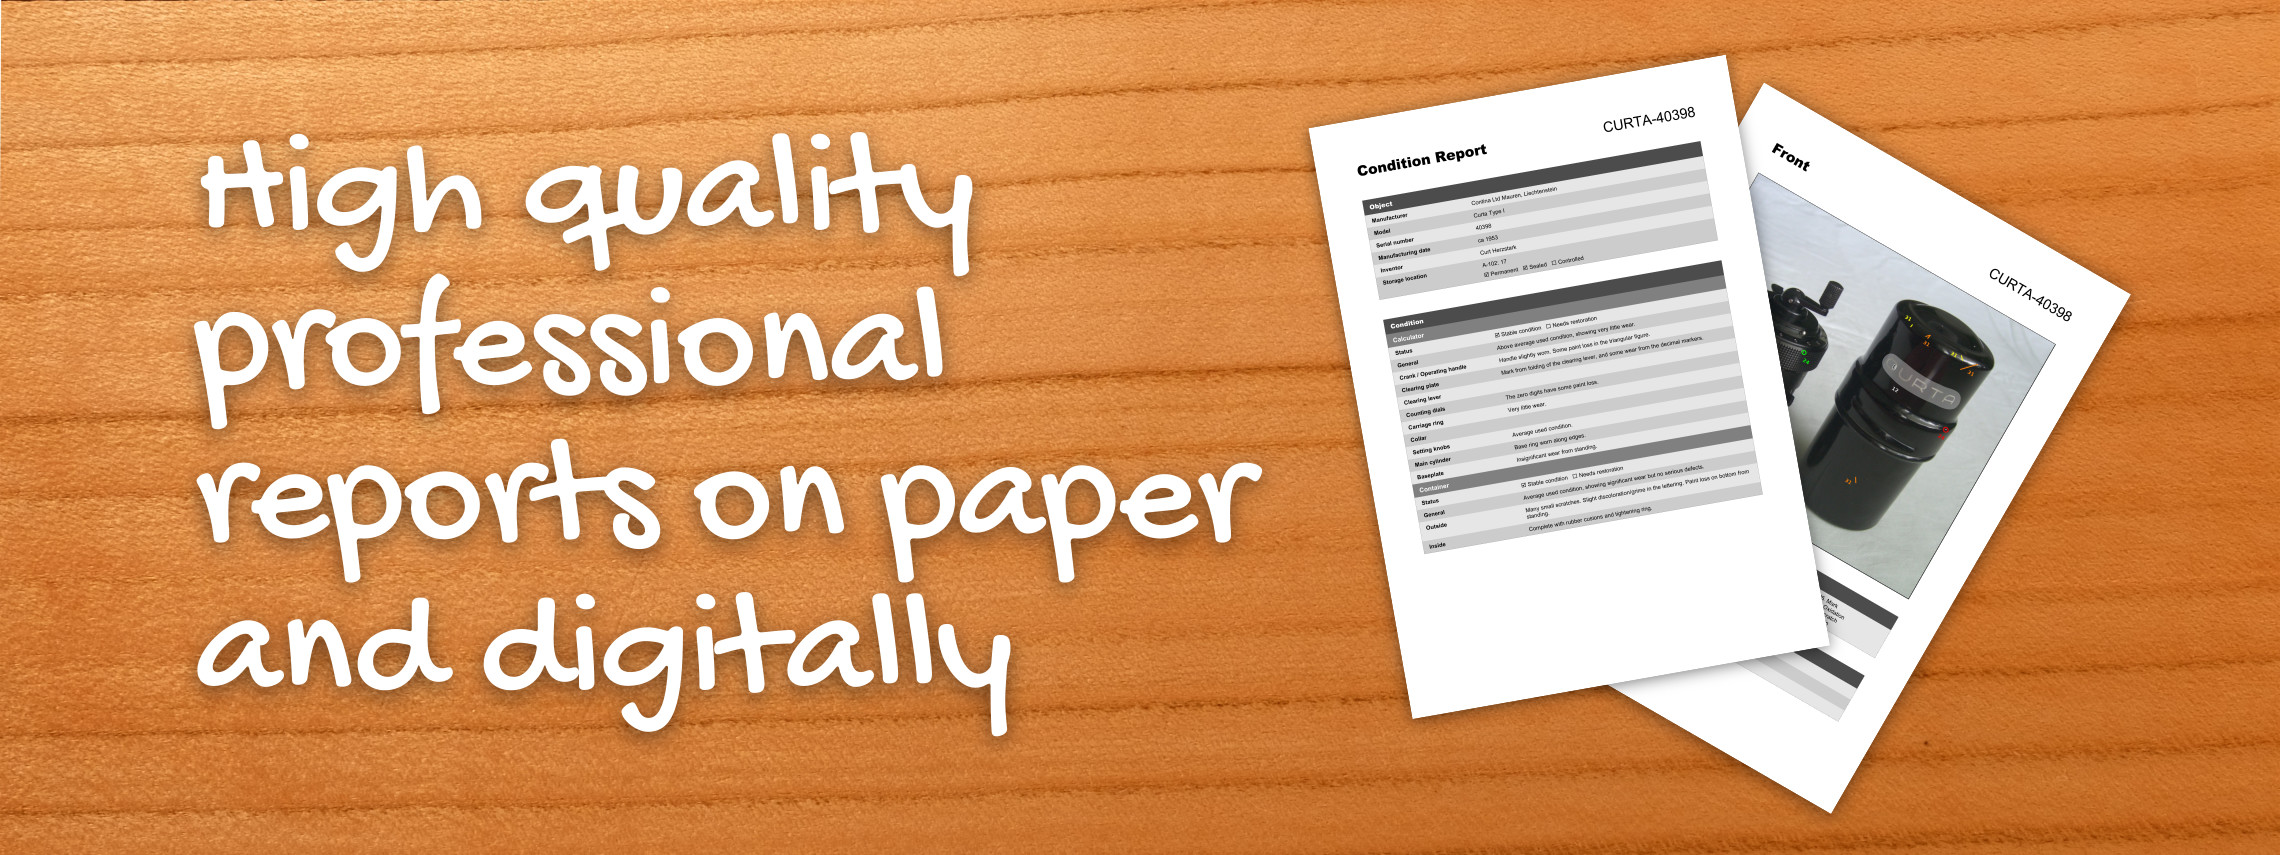 High quality professional reports on paper and digitally.